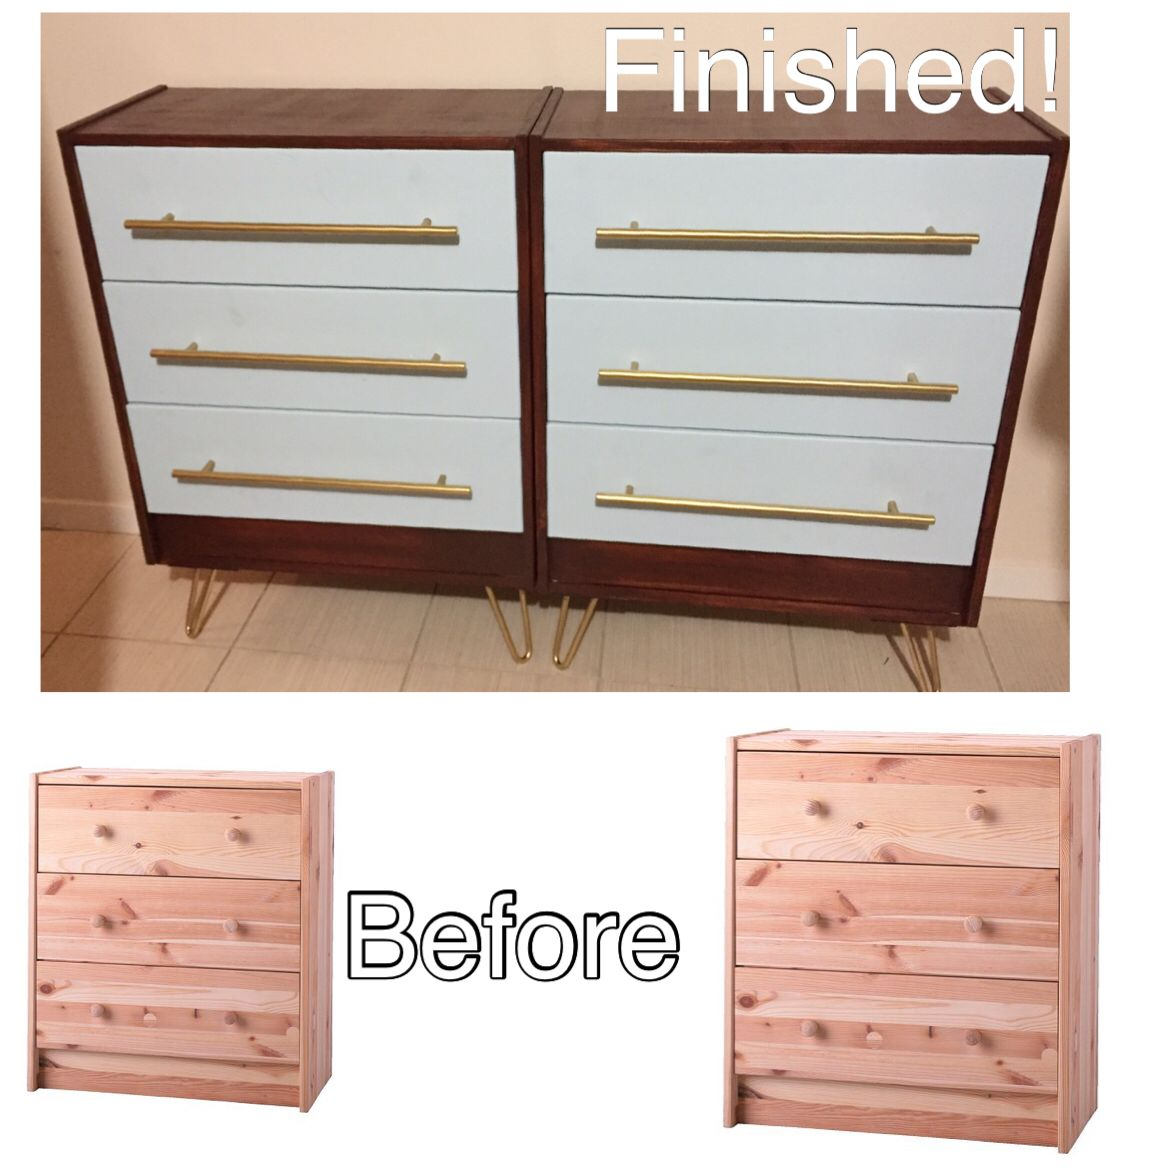 Superb My Ikea RAST Dresser Upgrade! Wood Stain, Paint, Hardware (ikea), Pictures Gallery